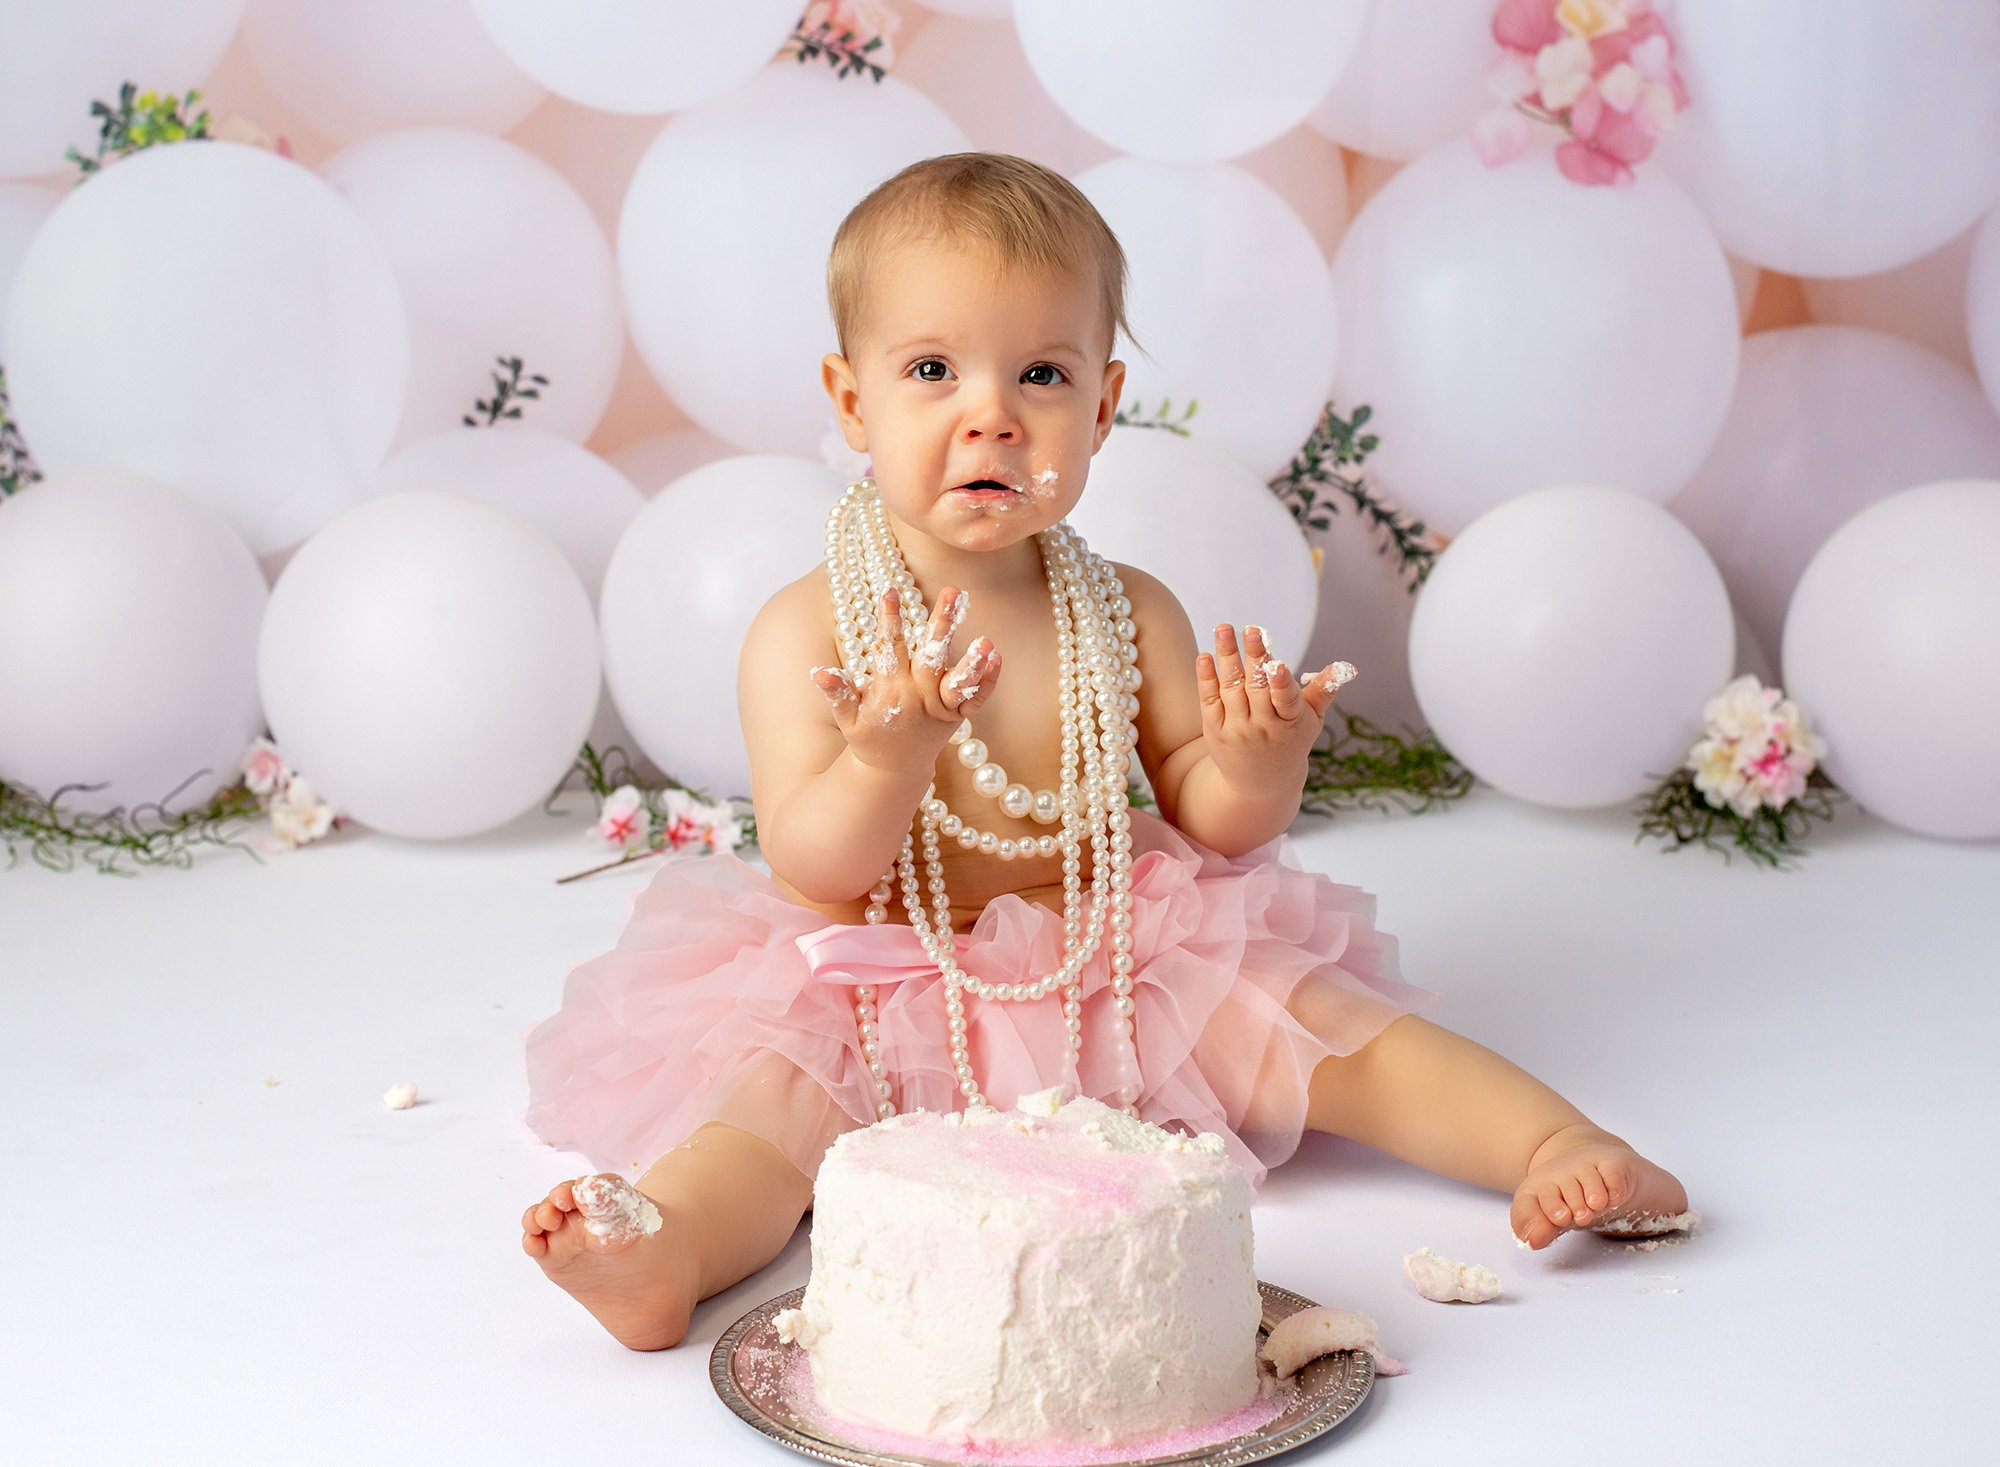 baby girl wearing layered pearl necklace sitting in front of cake with frosting on hands with white balloons in background